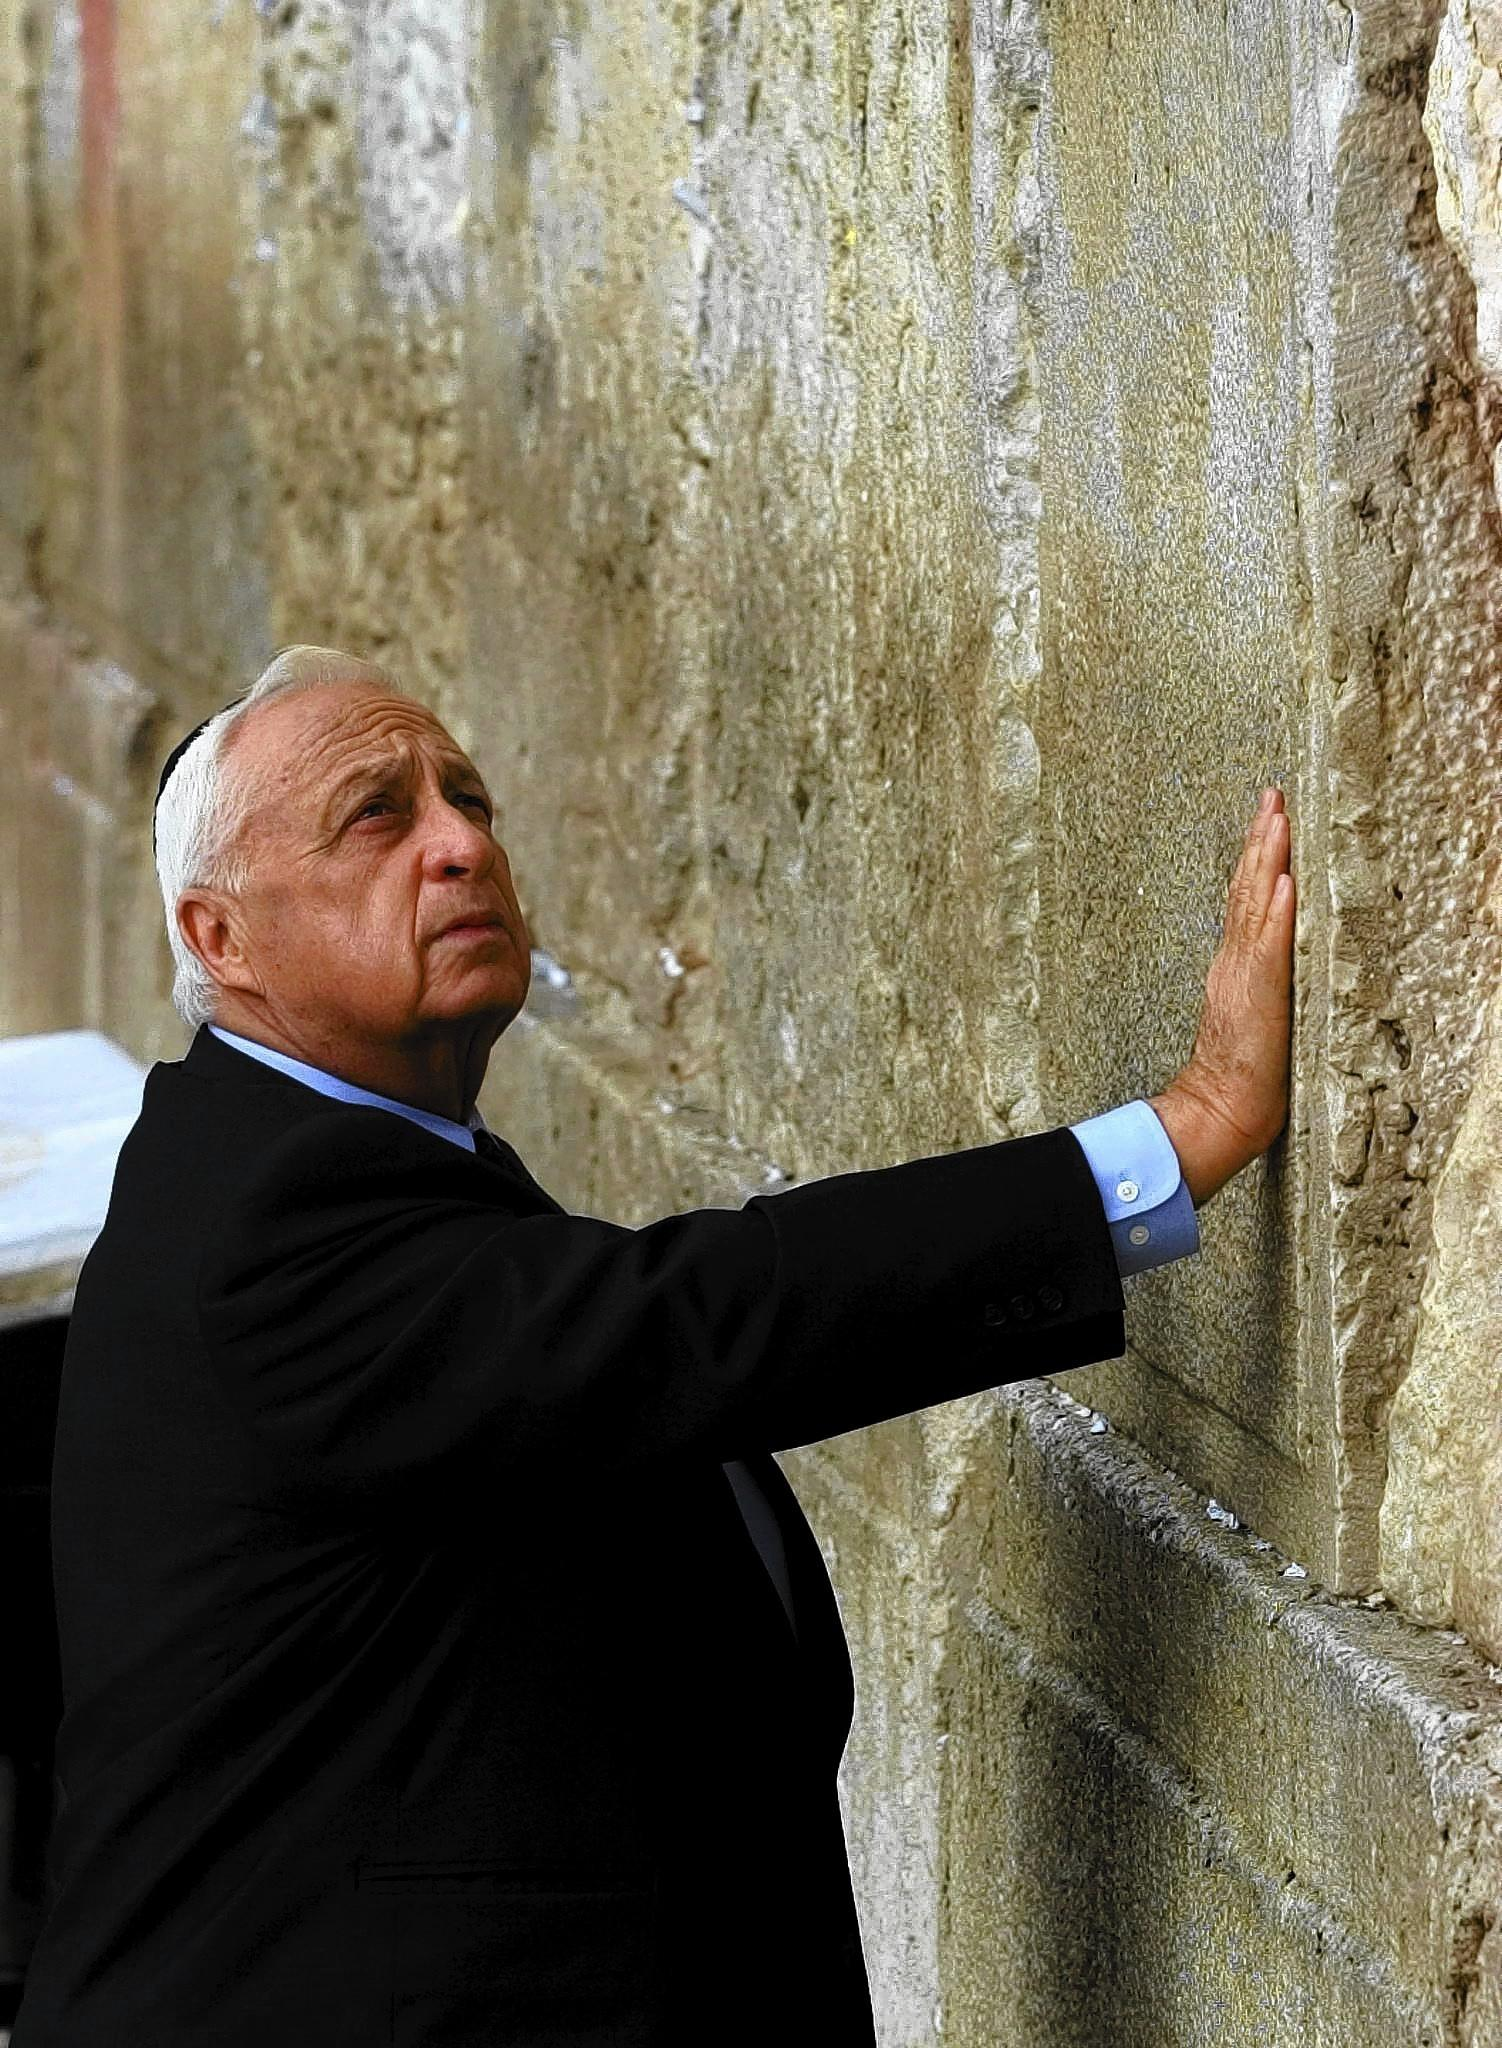 In 2001, then-Israeli Prime Minister Ariel Sharon prays at the Western Wall, Judaism's holiest site, in Jerusalem after being elected prime minister.